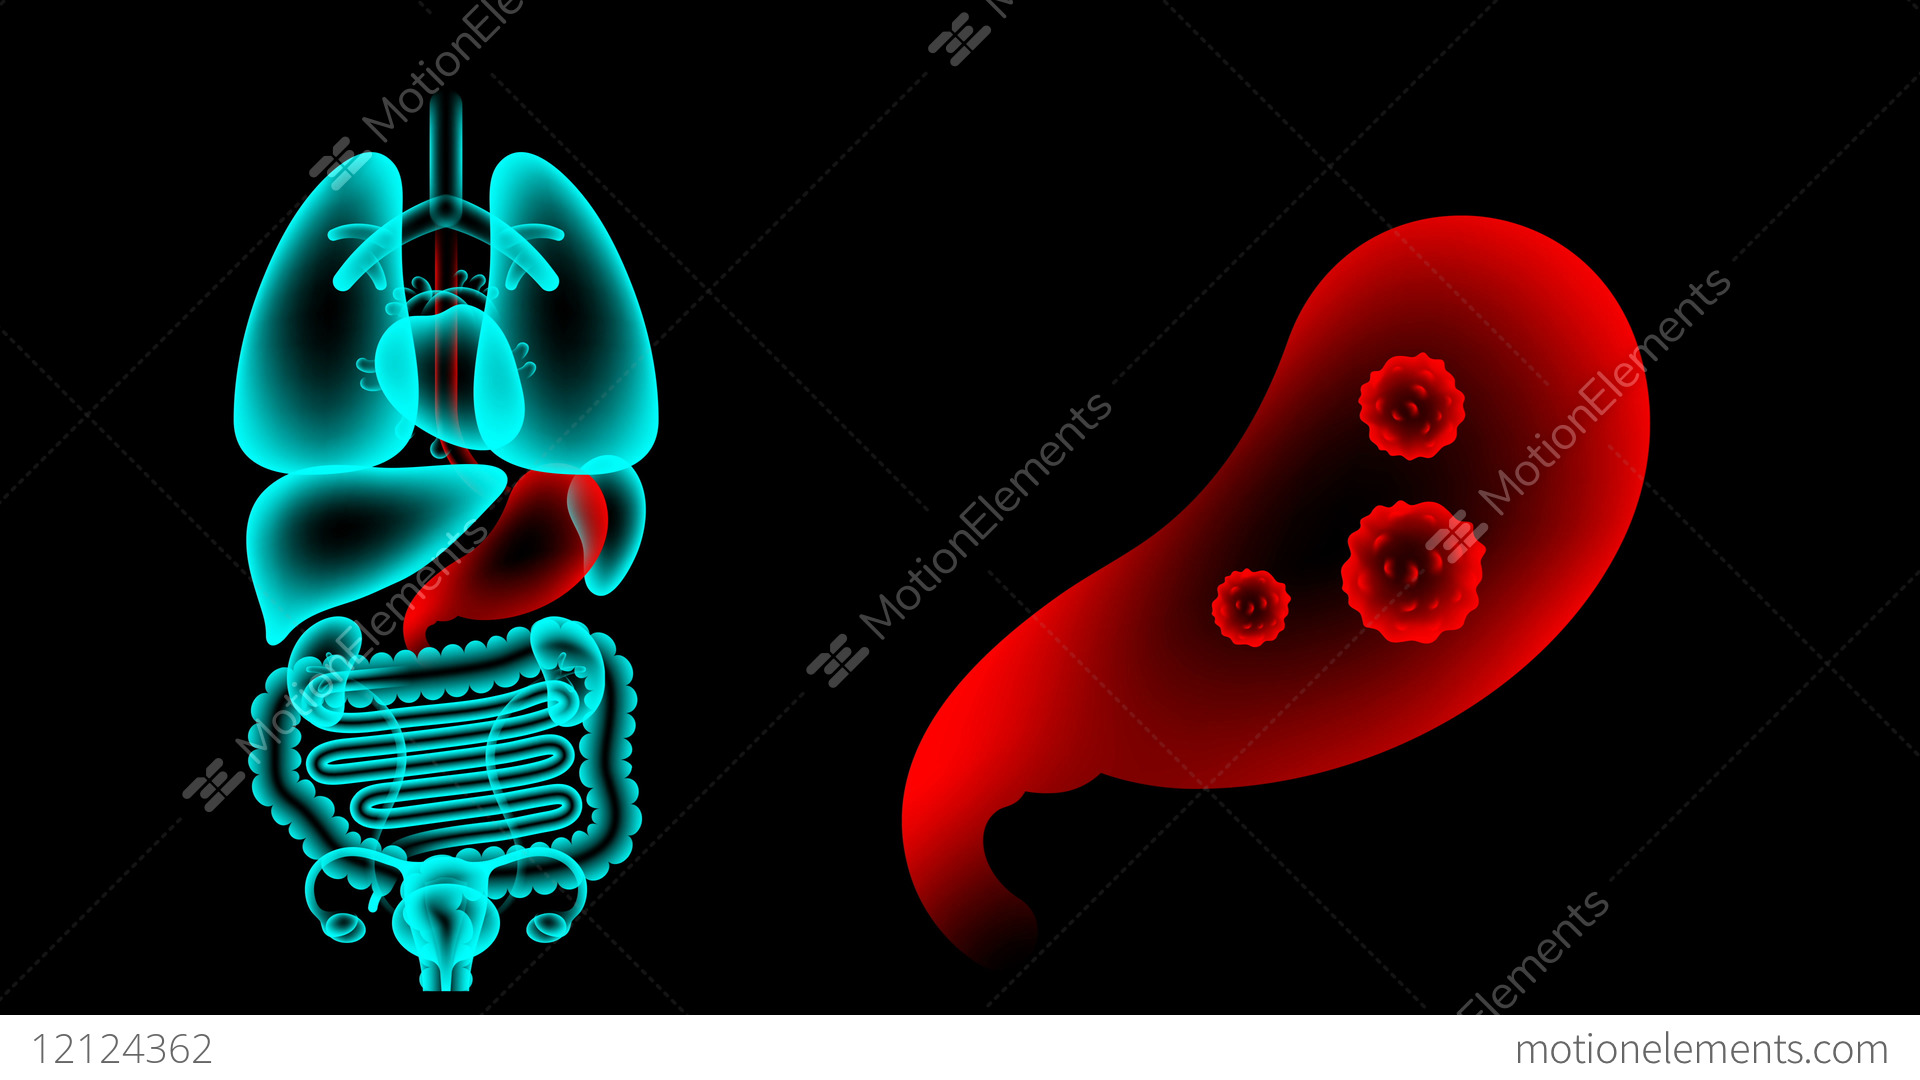 Human Female Organs X Ray Set Stomach Infection Concept Idea Red